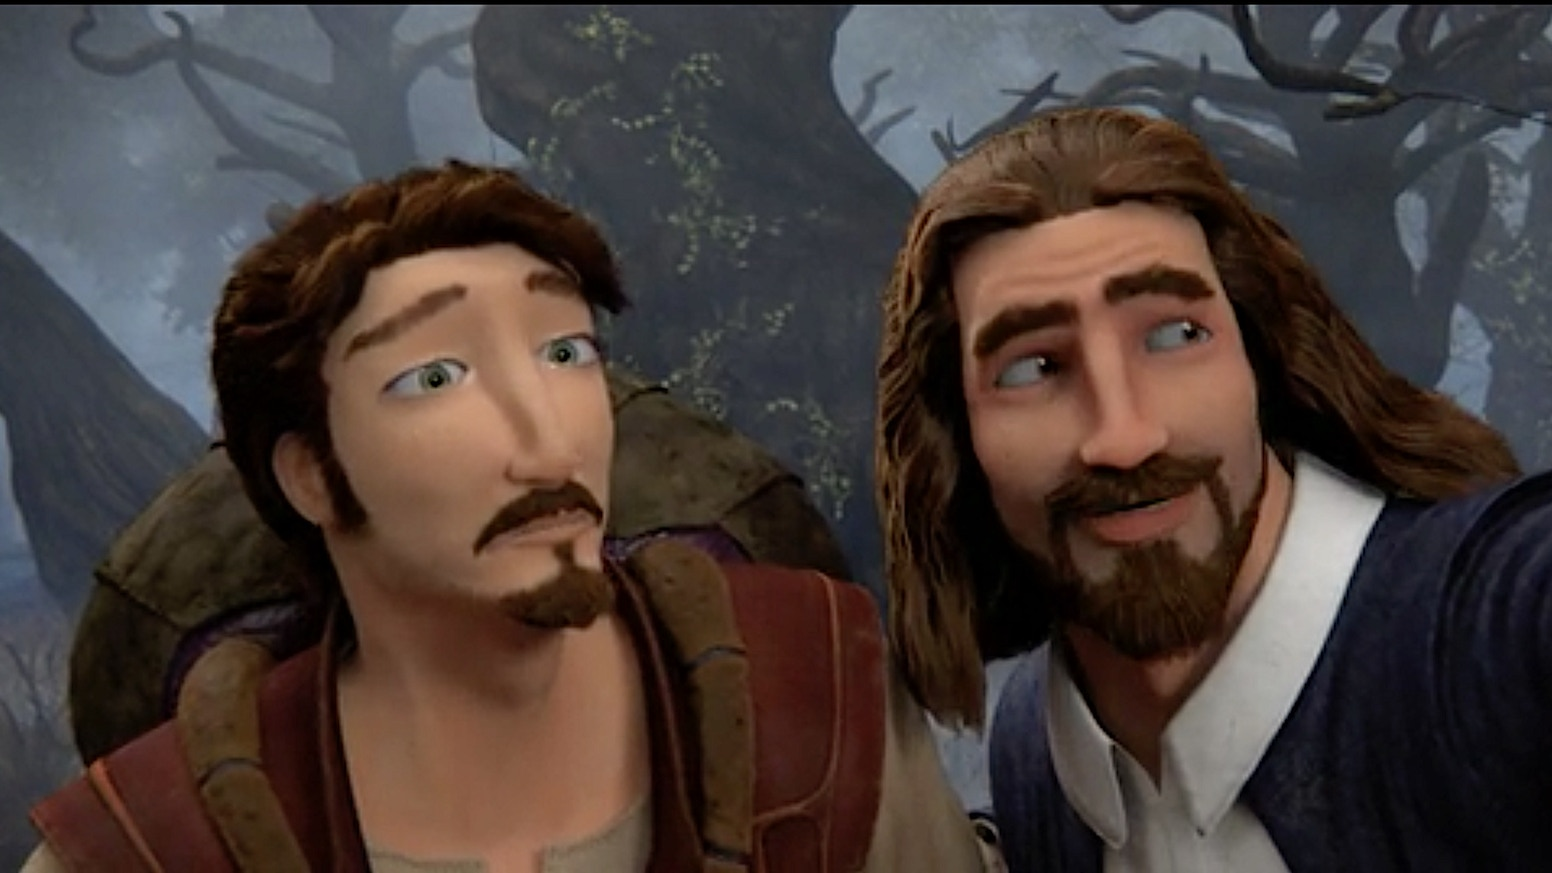 The first ever, feature length CGI animated film, of the world's 2nd most important book in history - The Pilgrim's Progress.